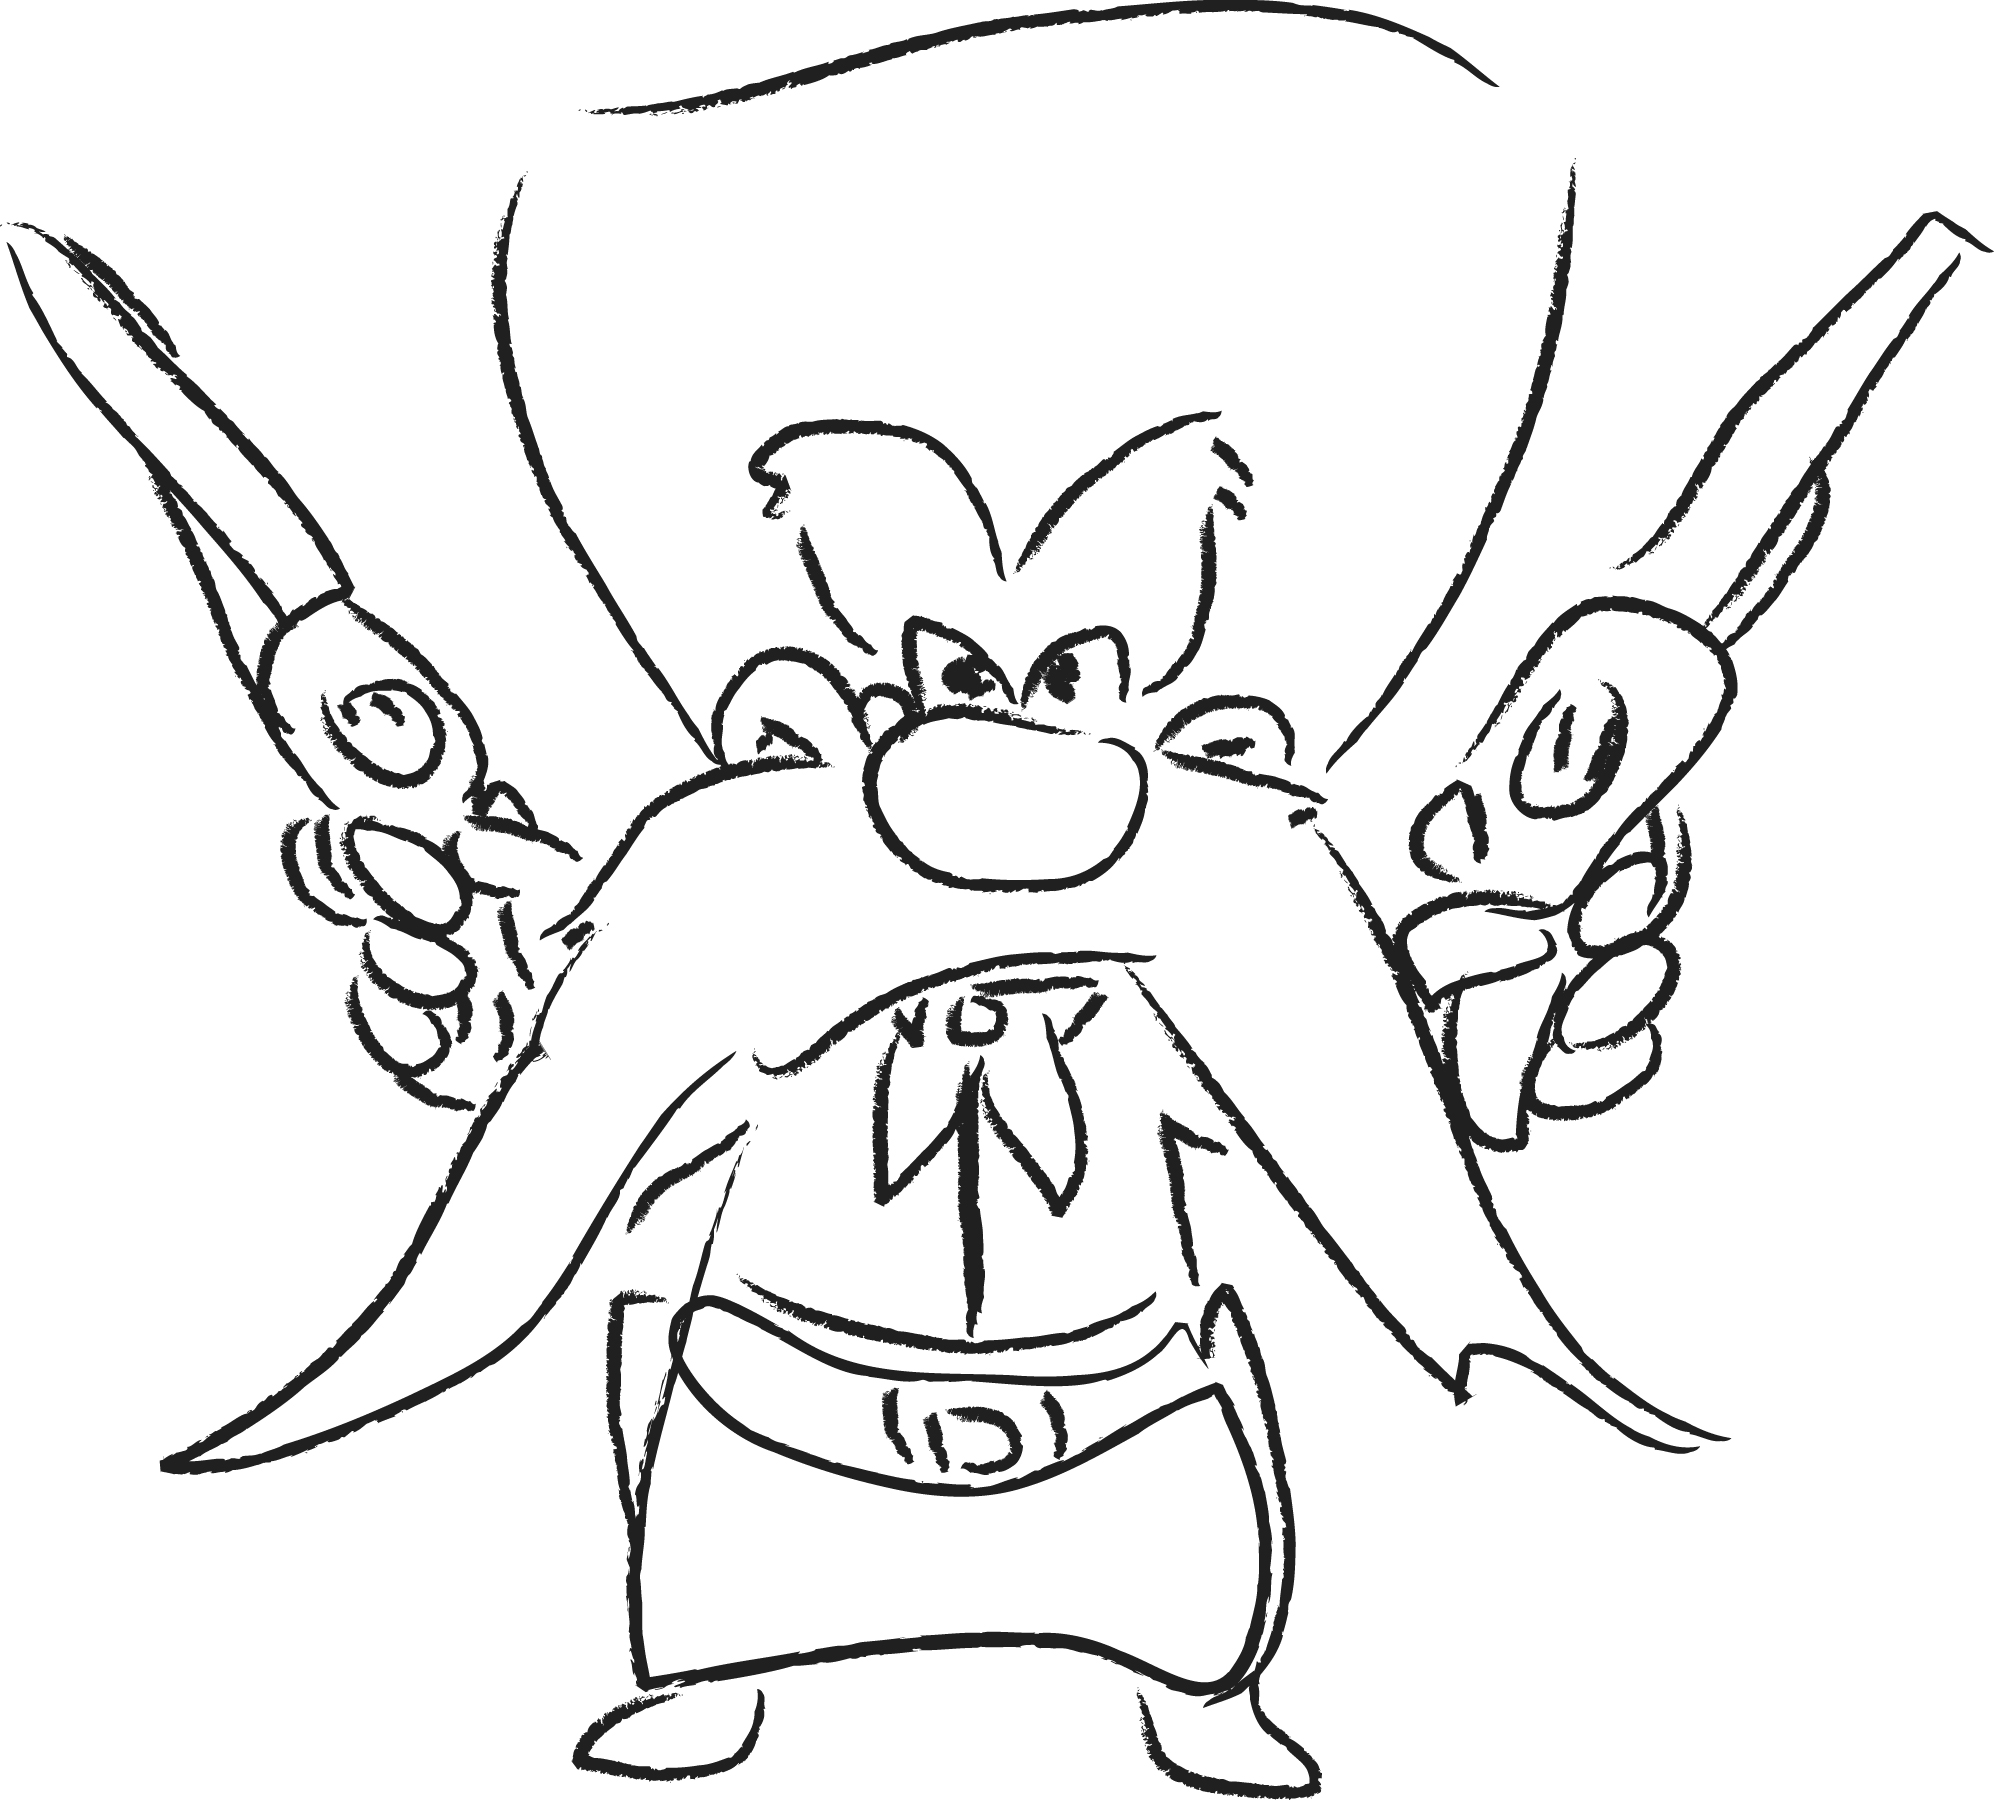 cartoon characters easy to draw easy drawing of cartoon characters at getdrawings free draw to easy cartoon characters